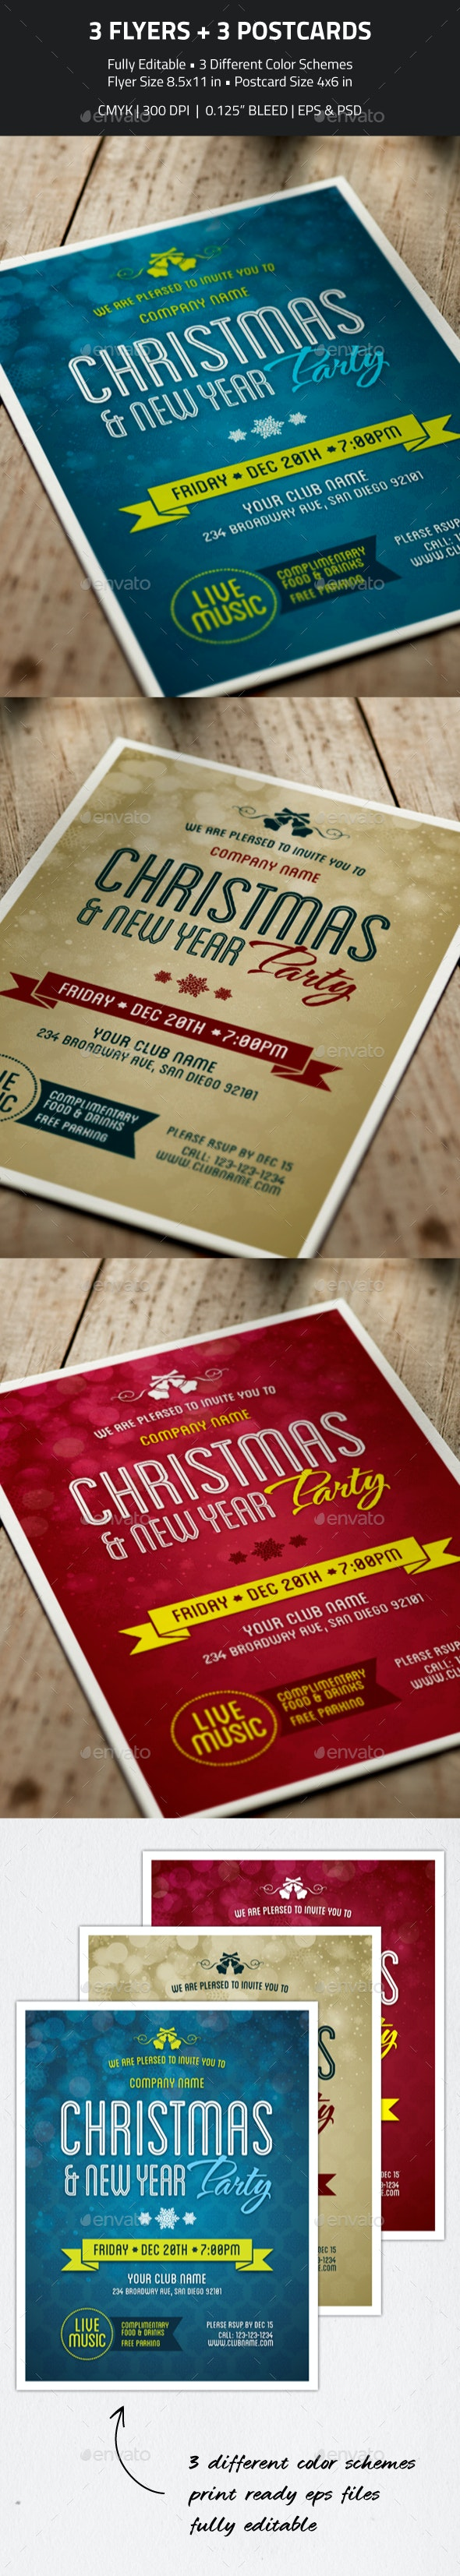 Christmas, New Year Party Flyer & Invitation - Holidays Events